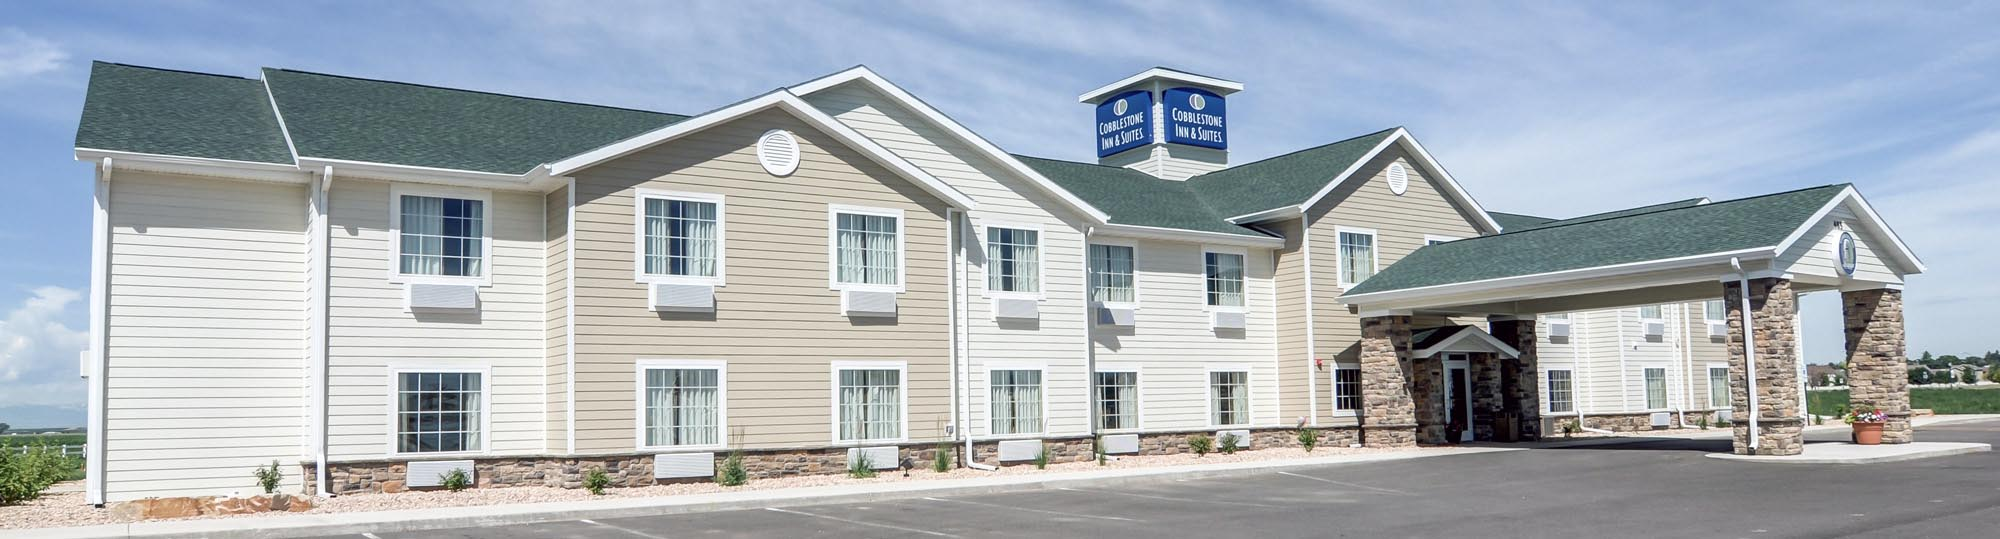 Cobblestone Inn and Suites Eaton